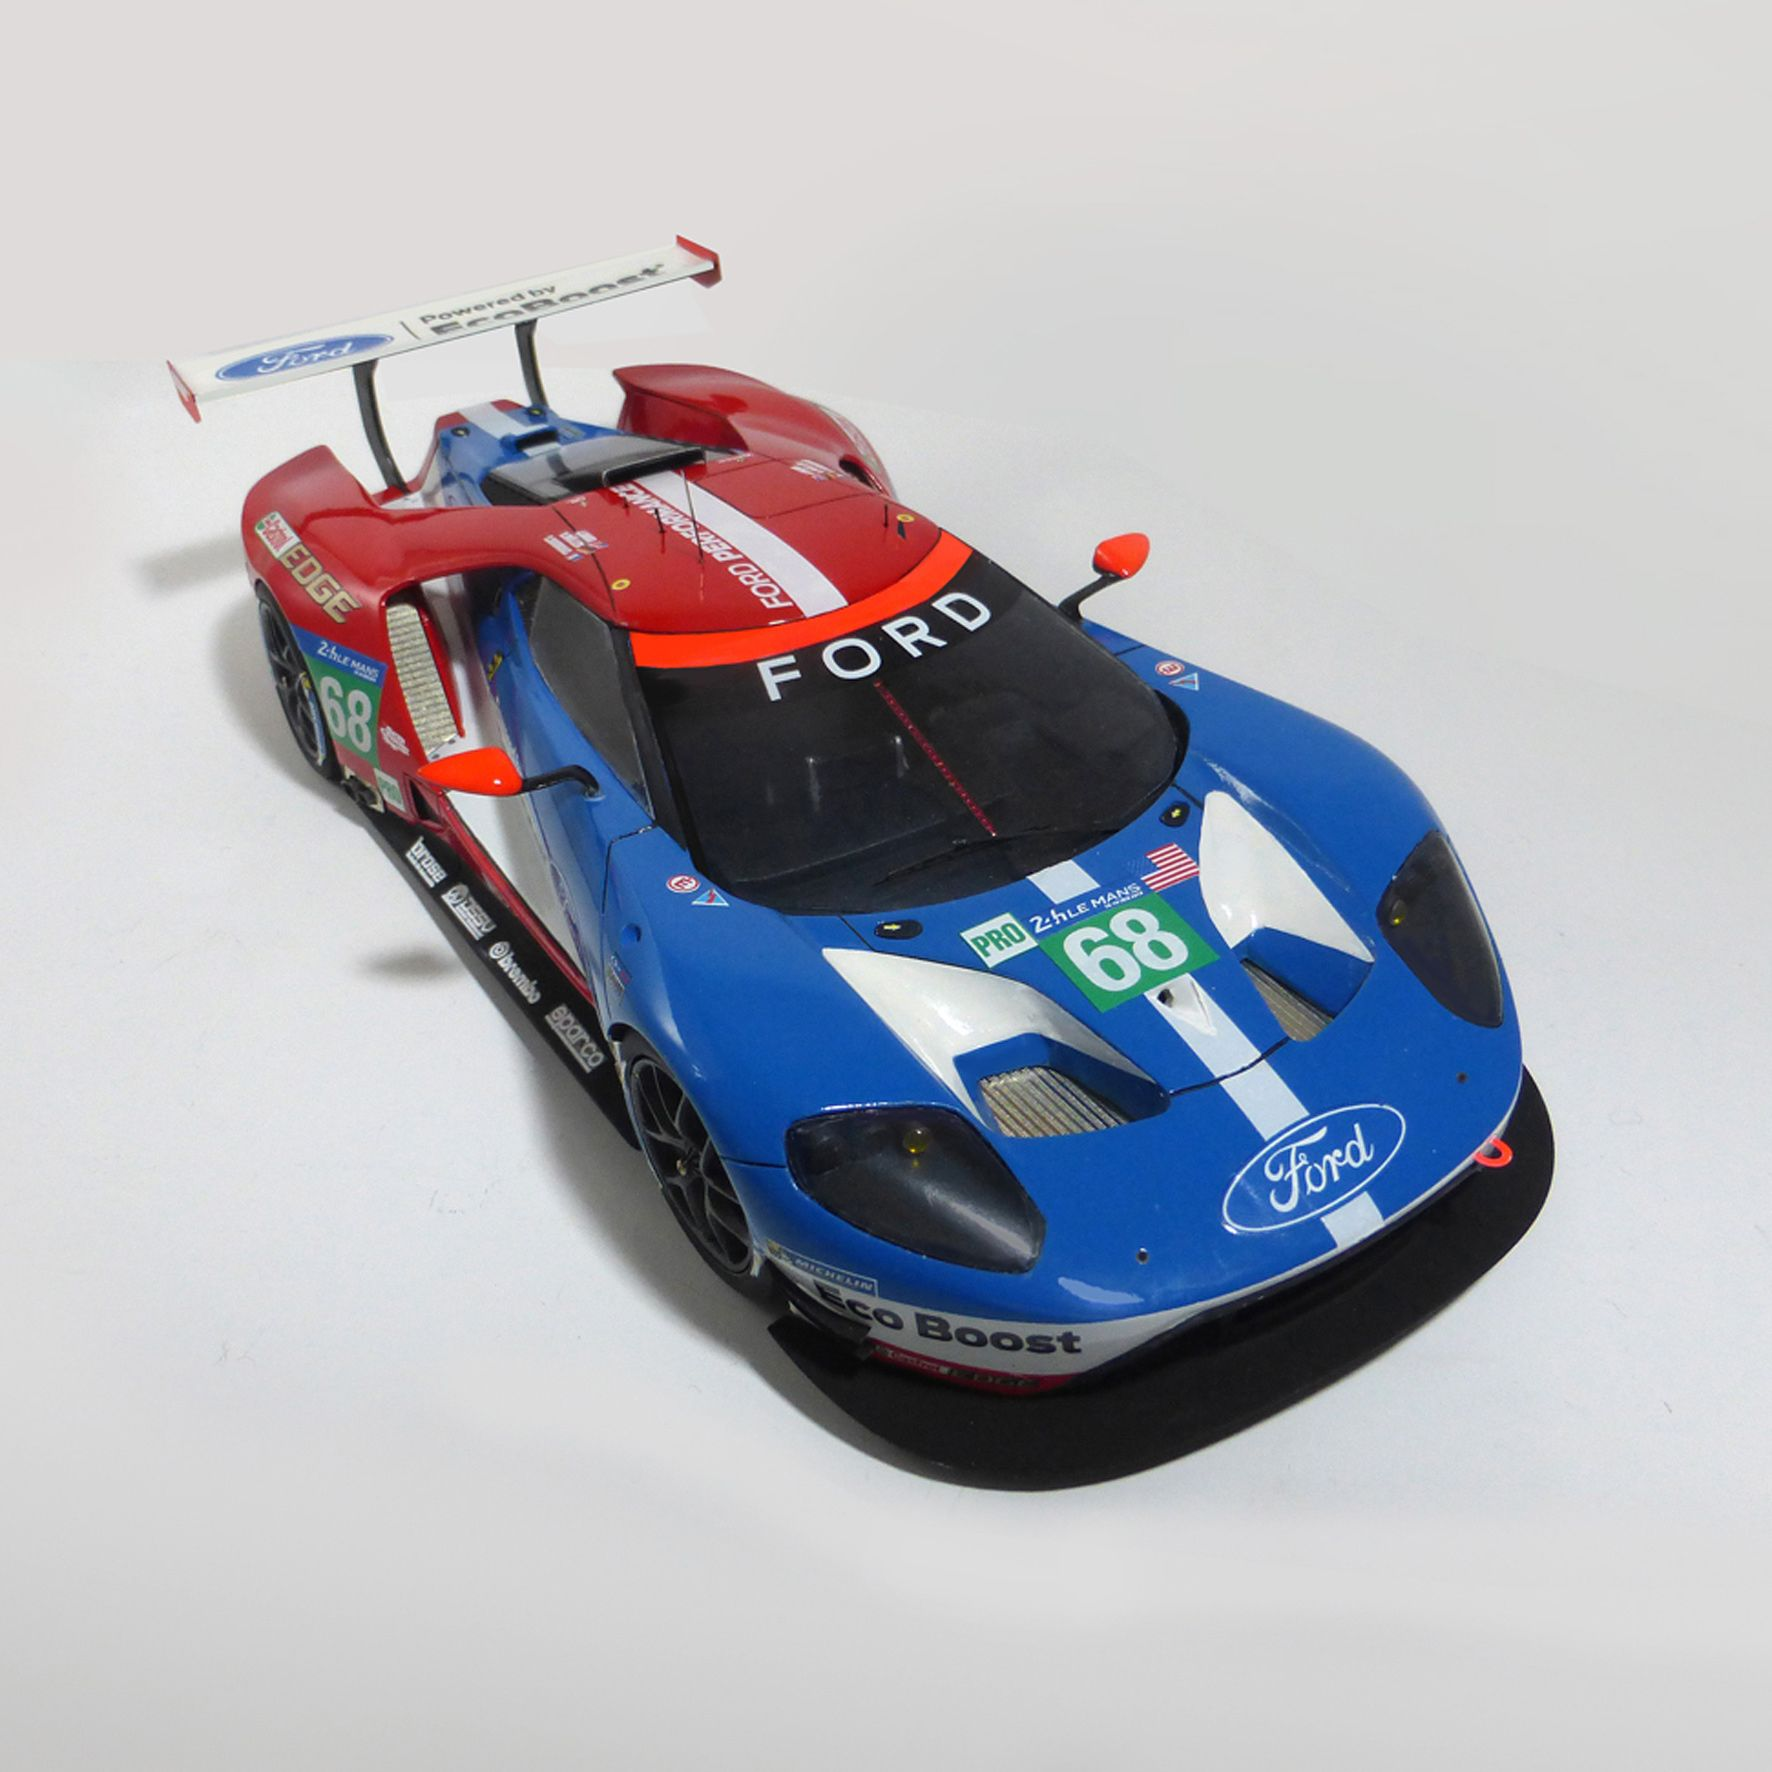 Ford GT Le Mans 2016 1/24 scale model car. Available in